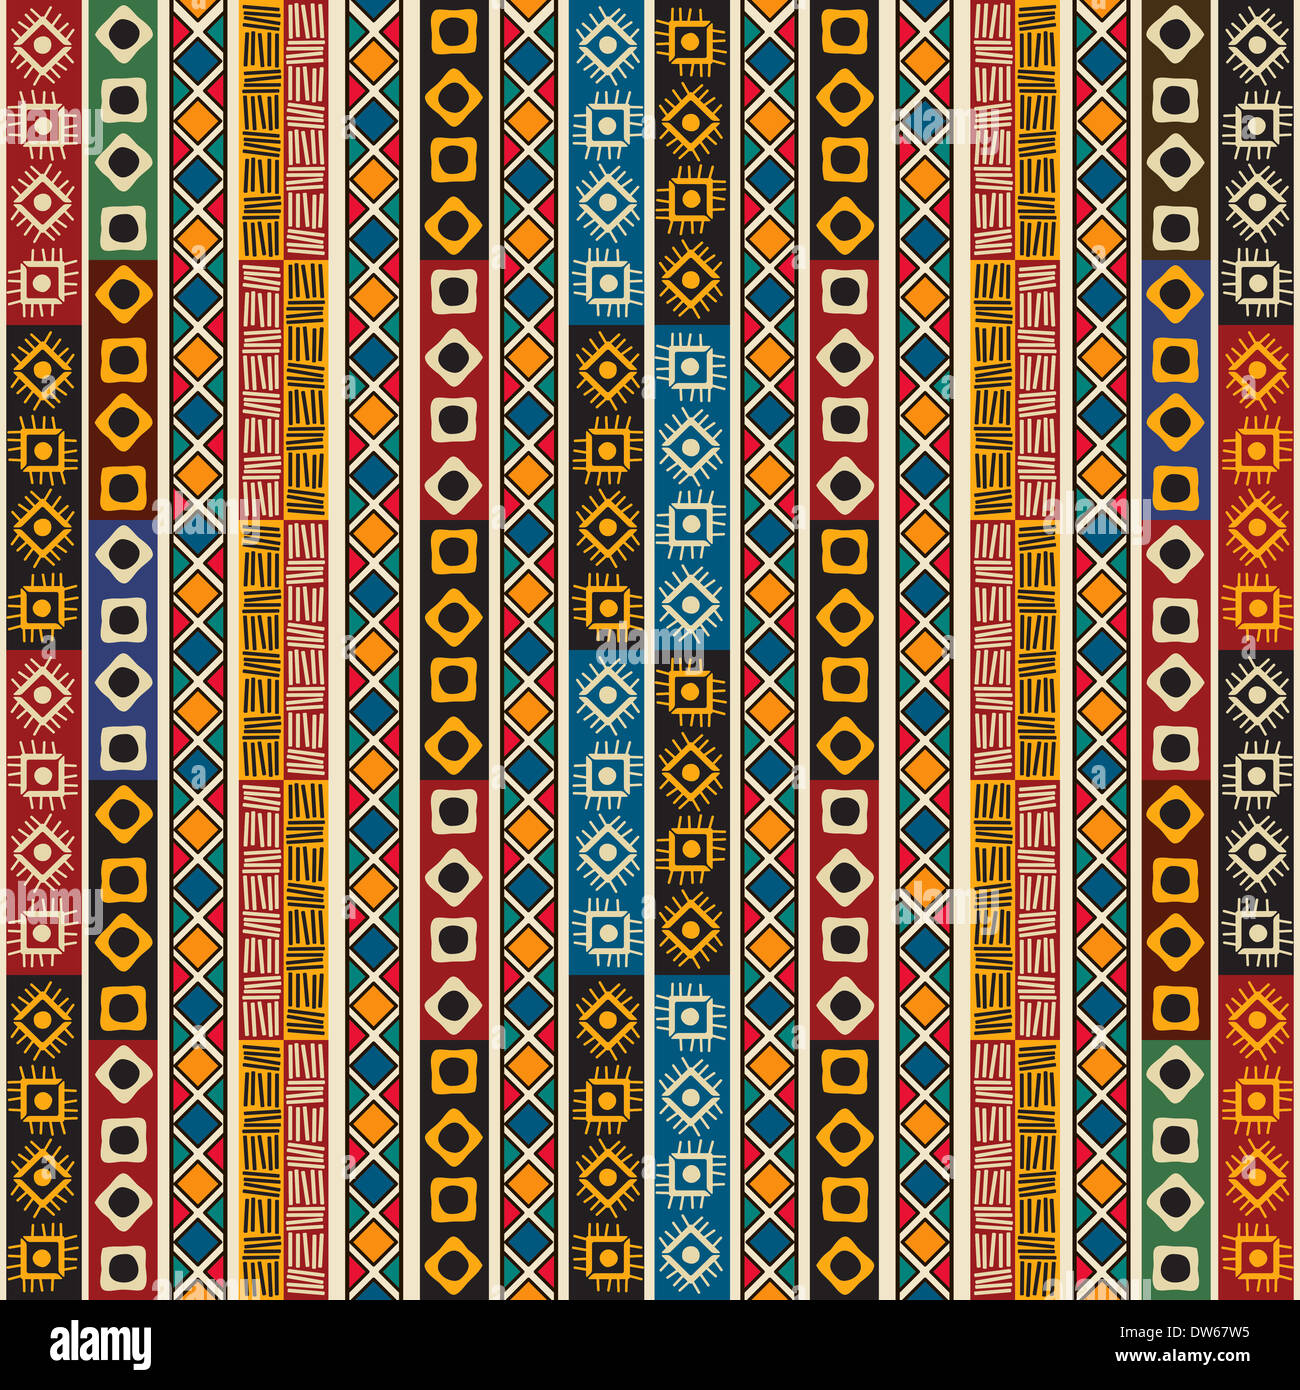 Colorful Ethno Seamless Pattern Design With Graphic Elements.   Stock Image